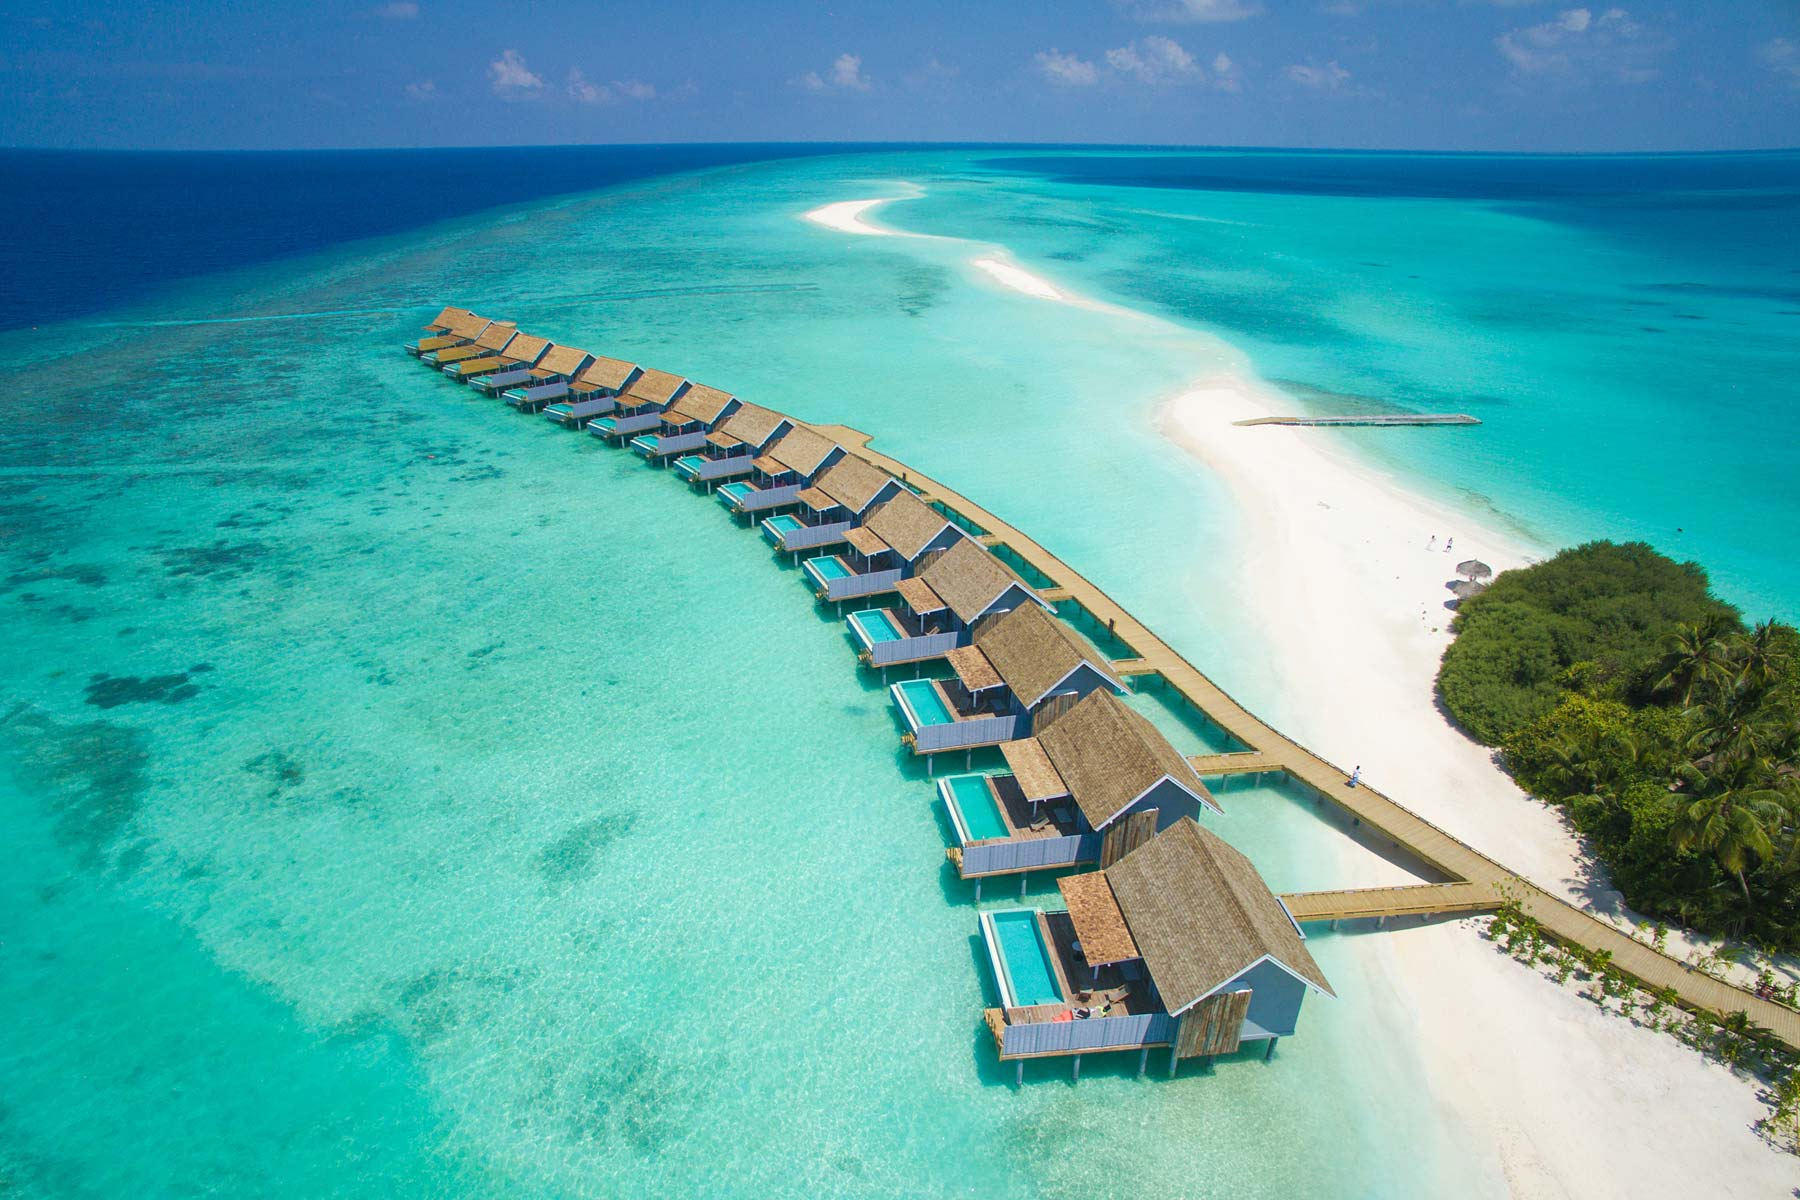 庫拉瑪蒂島 Kuramathi Resort Maldives